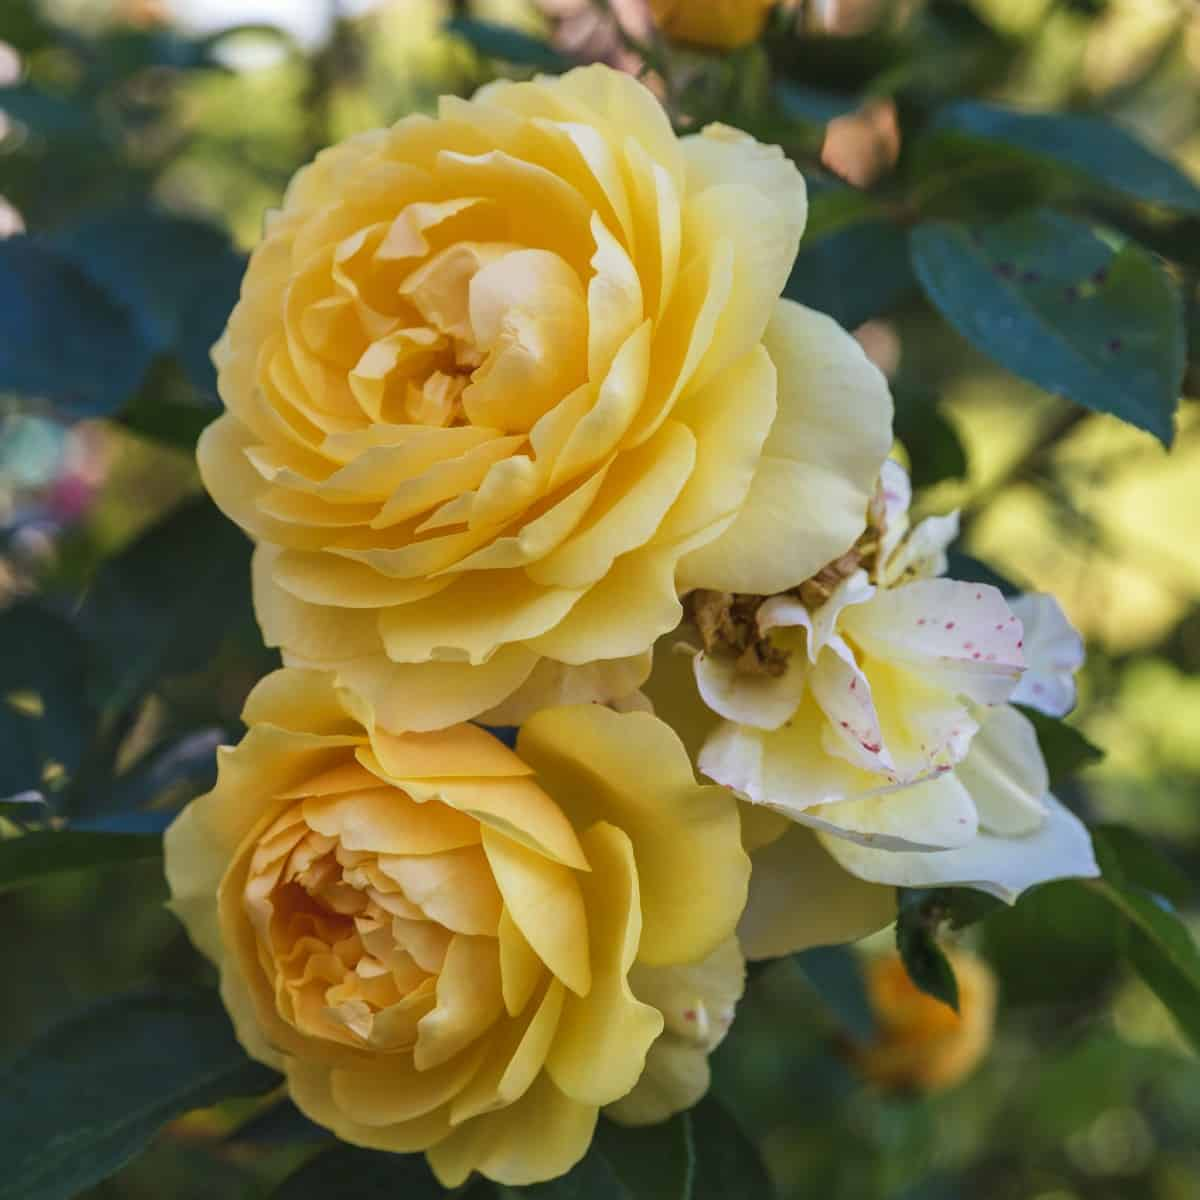 The Graham Thomas is a popular yellow rose species.